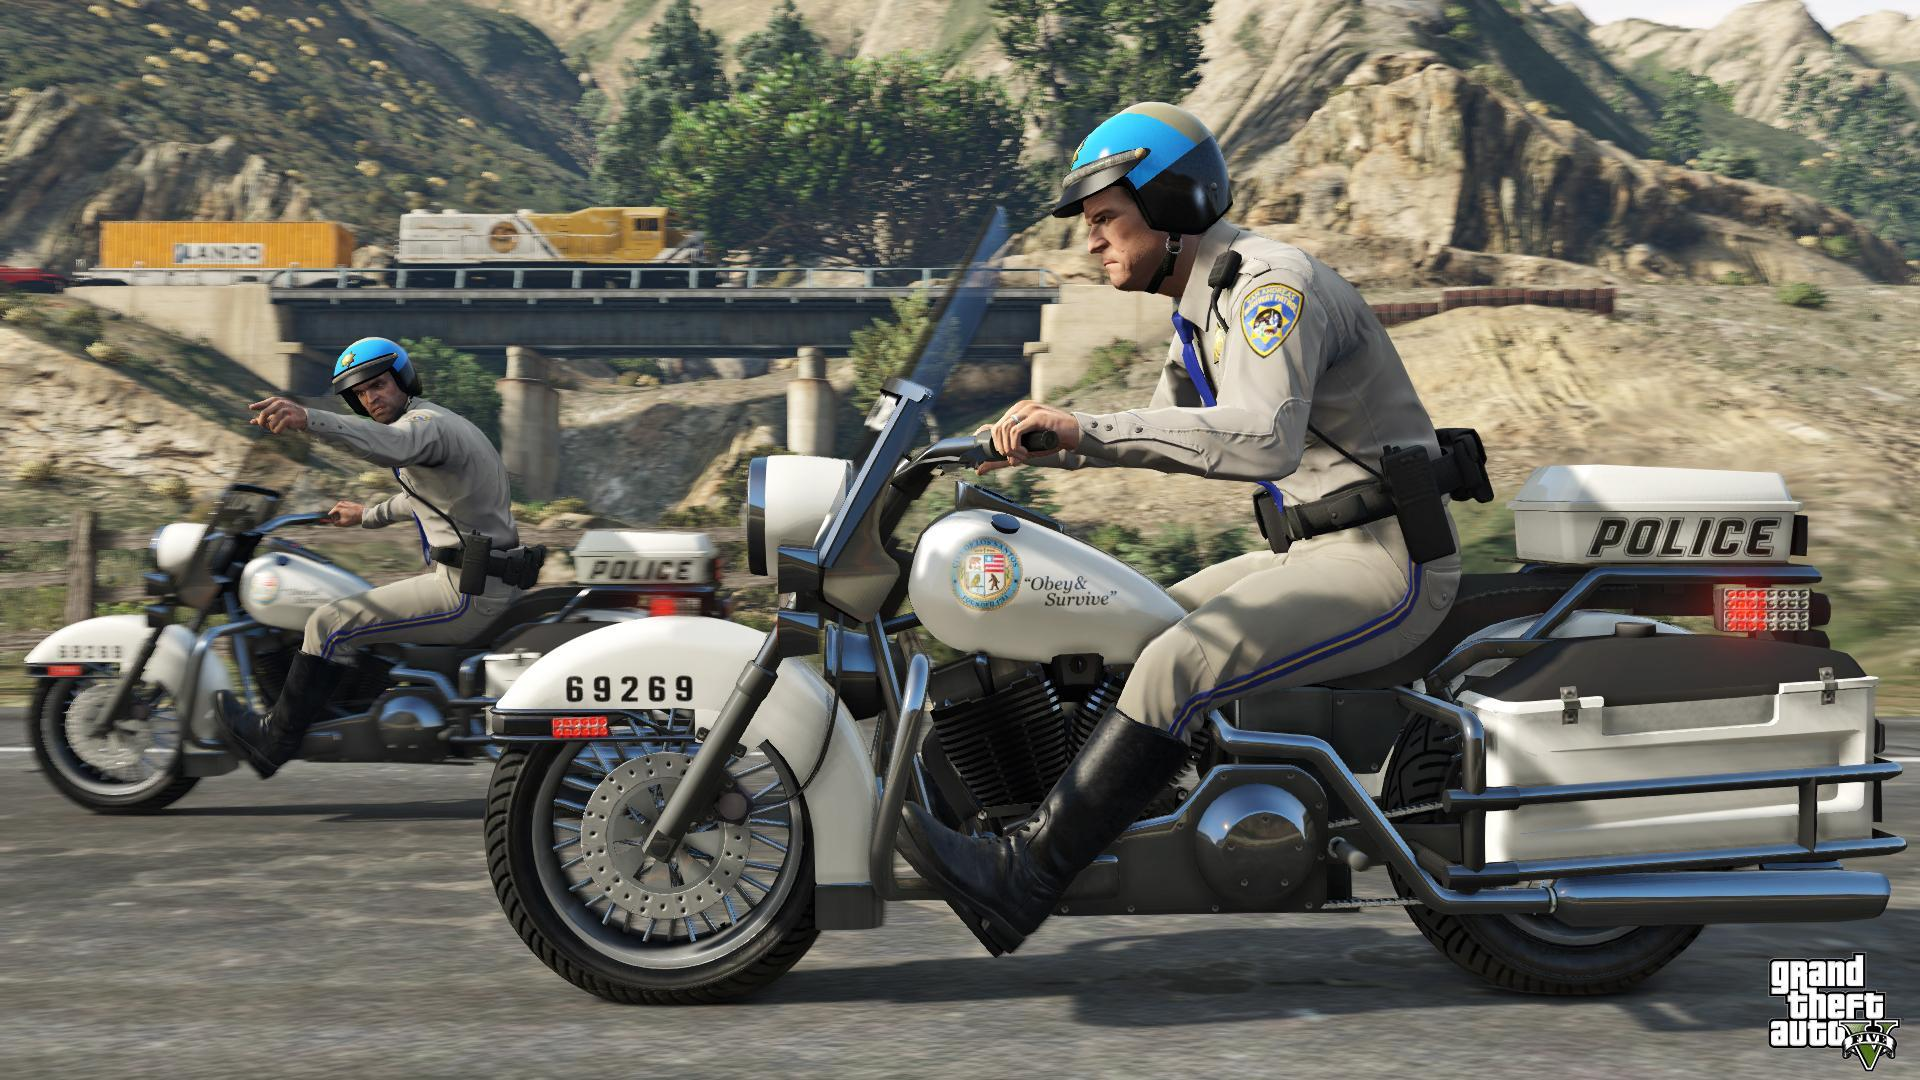 How To Spawn Police Vehicles In Gta 5 Rare Police Vehicles Spawn